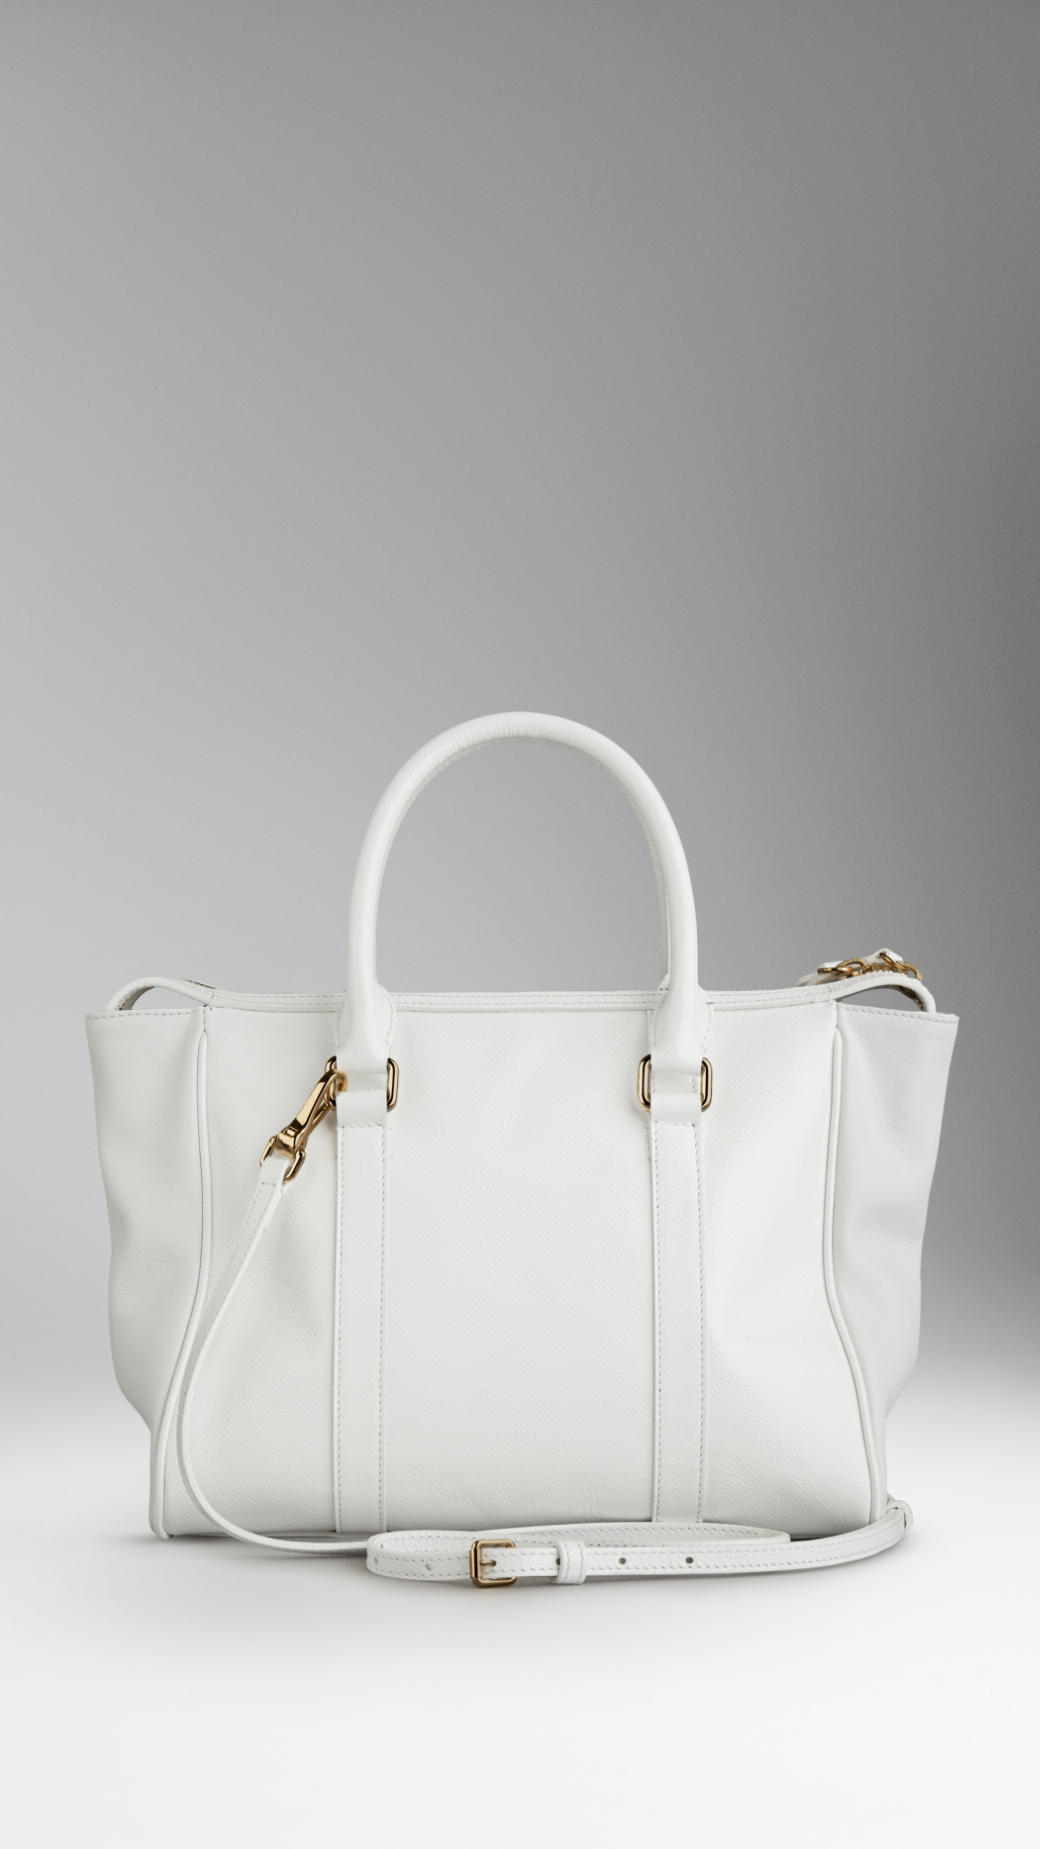 Lyst - Burberry Medium Patent London Leather Tote Bag in White d389ec11ed62f